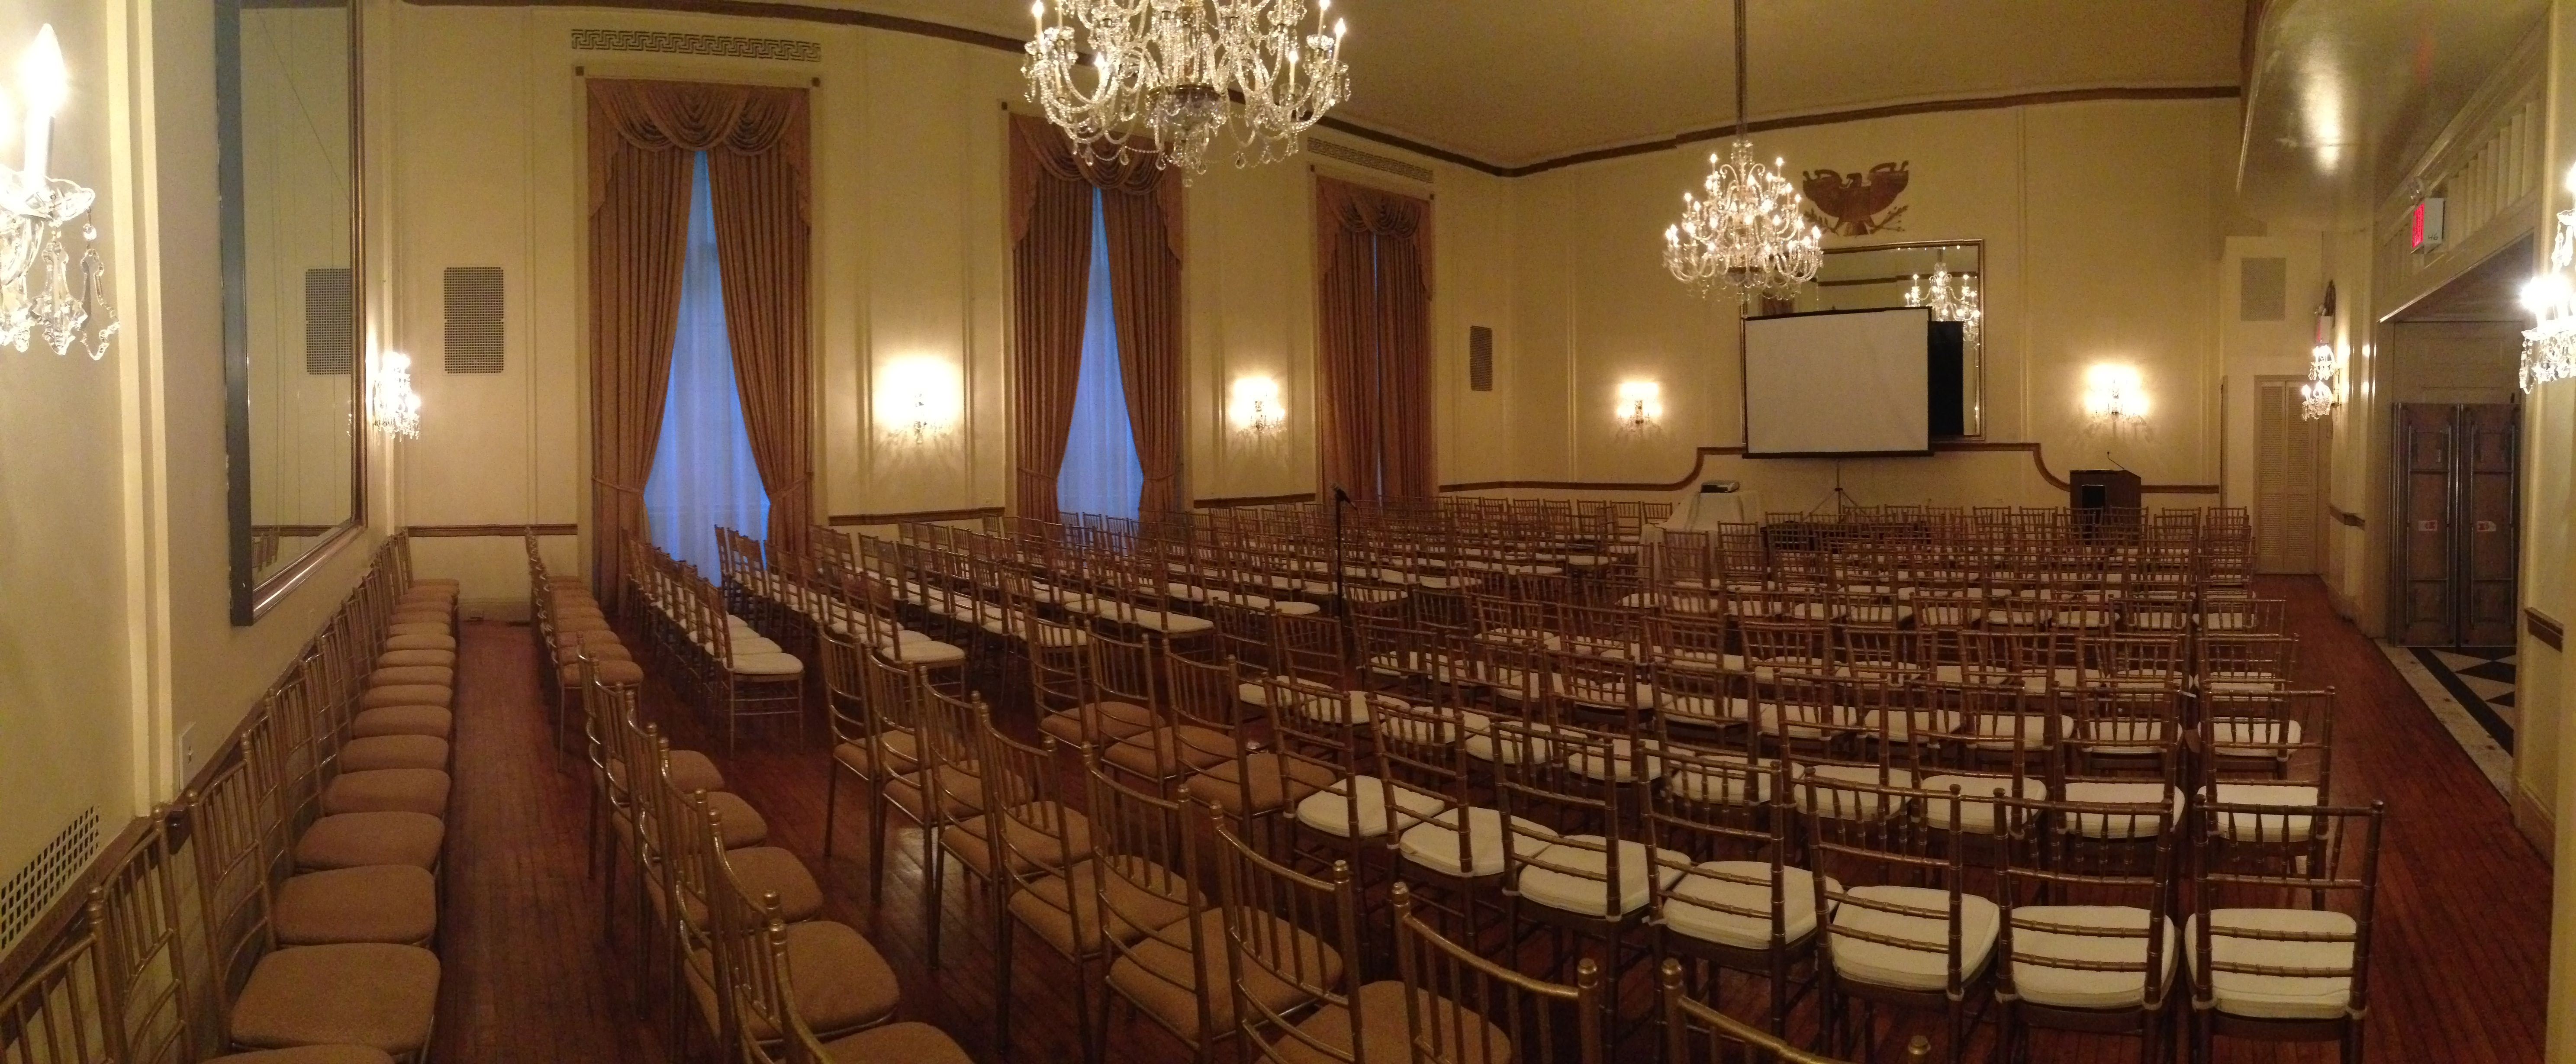 GrandBallroom with #theater seating for #corporate functions ...